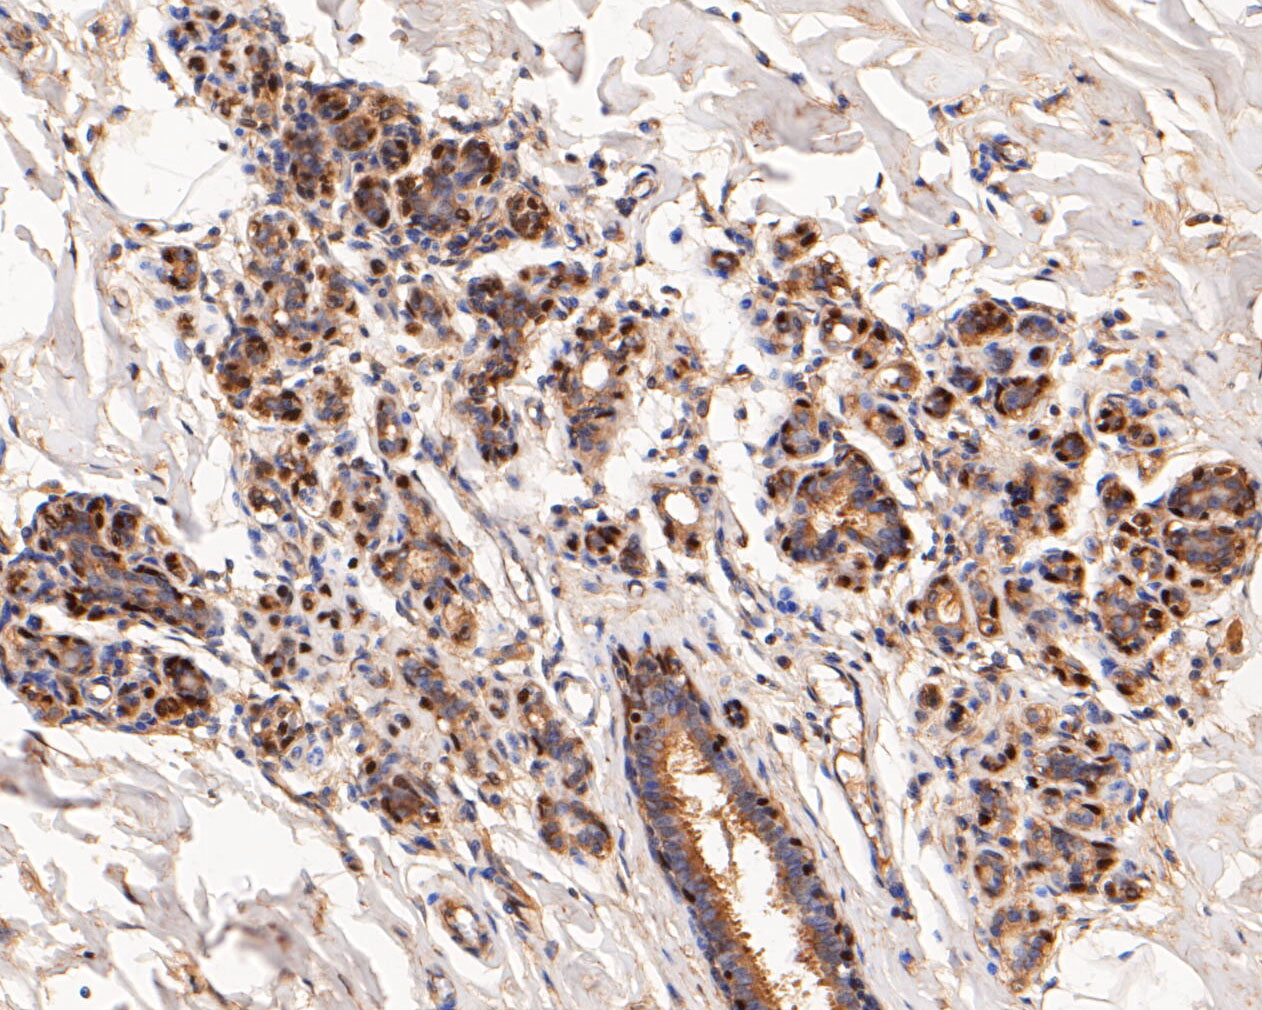 Immunohistochemical analysis of paraffin-embedded human breast tissue using anti-p63 antibody. The section was pre-treated using heat mediated antigen retrieval with sodium citrate buffer (pH 6.0) for 20 minutes. The tissues were blocked in 5% BSA for 30 minutes at room temperature, washed with ddH2O and PBS, and then probed with the primary antibody (ET1610-44, 1/50) for 30 minutes at room temperature. The detection was performed using an HRP conjugated compact polymer system. DAB was used as the chromogen. Tissues were counterstained with hematoxylin and mounted with DPX.